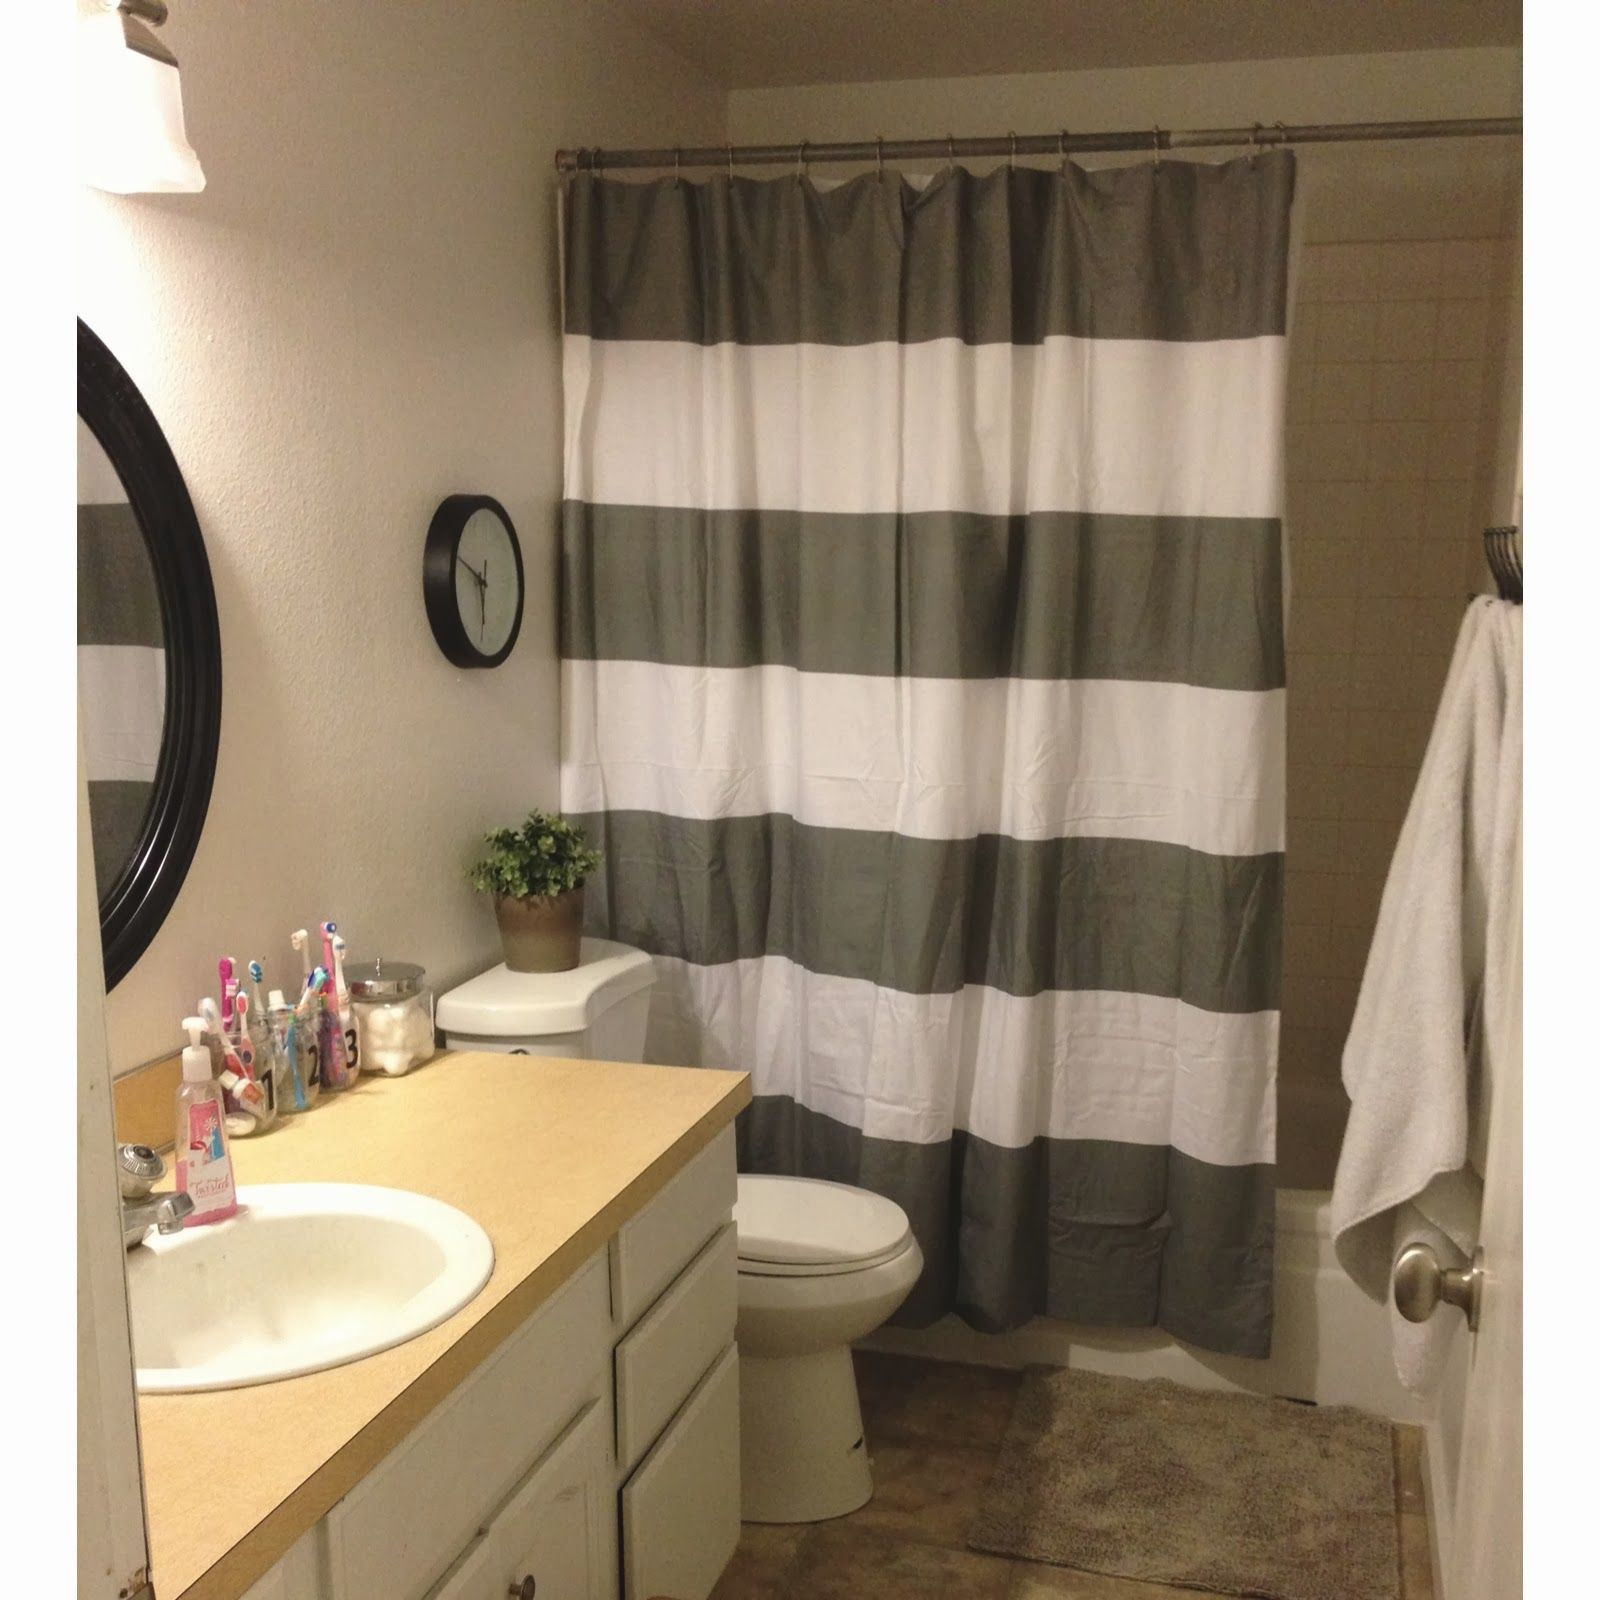 split shower curtain ideas. Keep Home Simple: Our Split Level Fixer Upper Shower Curtain Ideas L